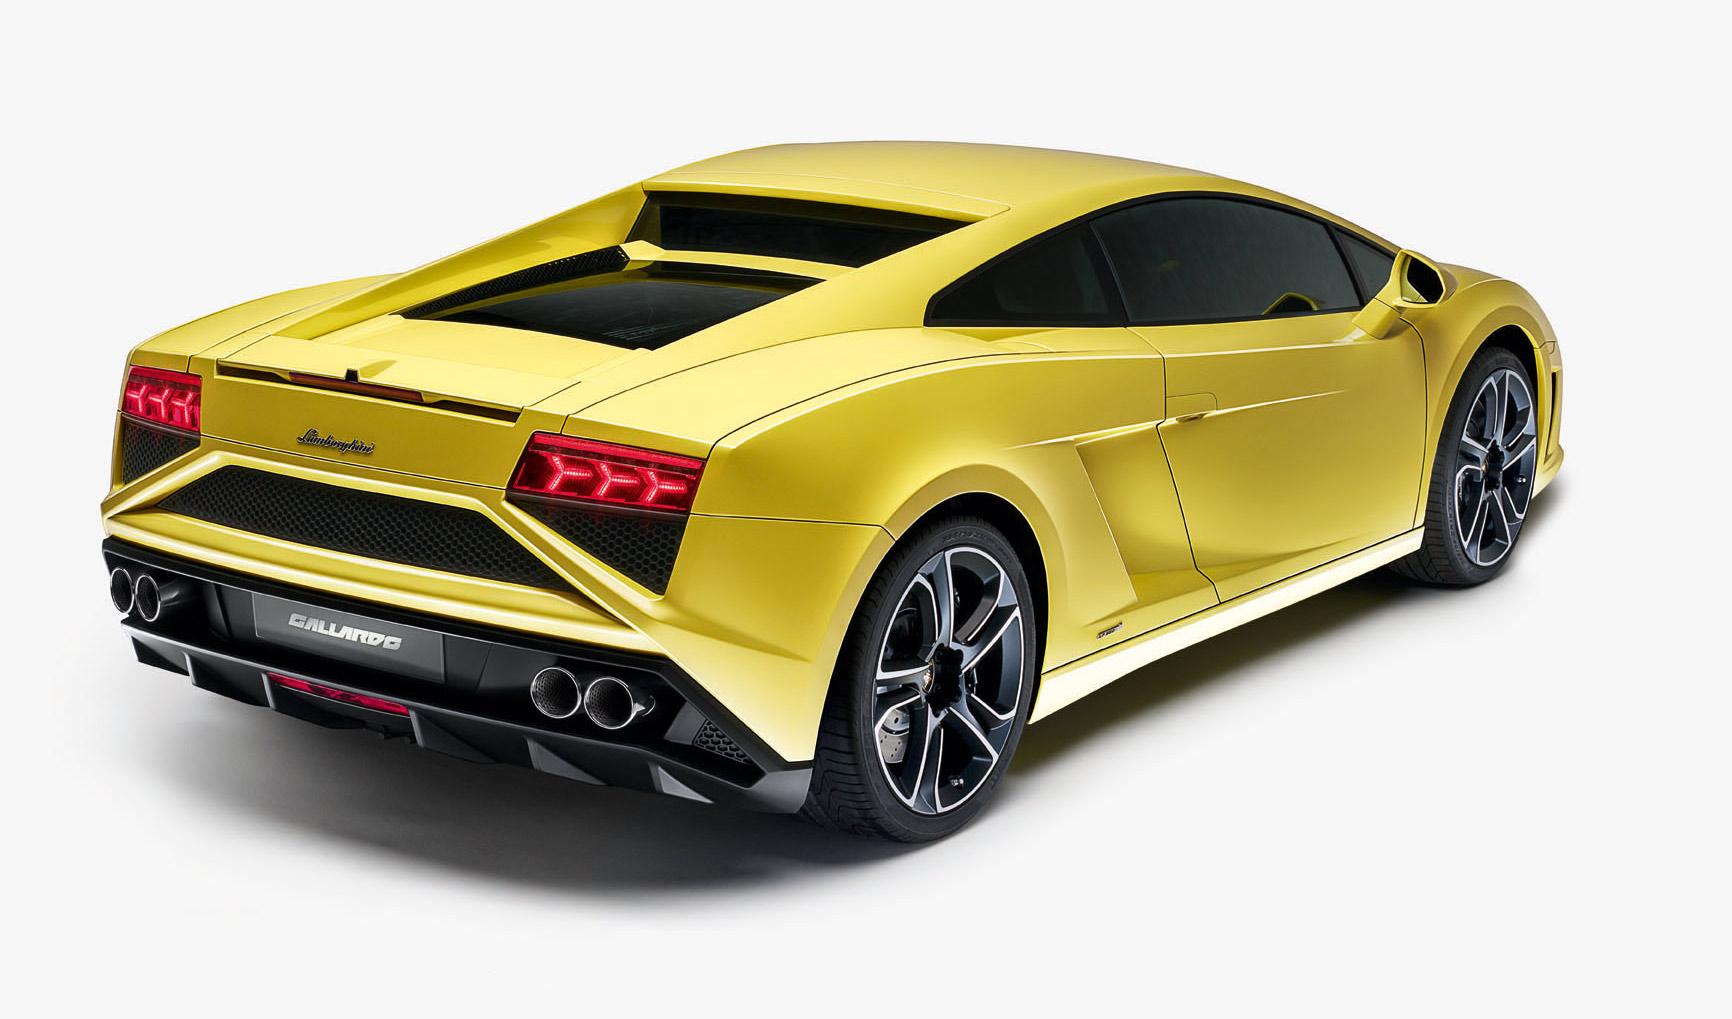 new_gallardo_lp_560-4_02_low